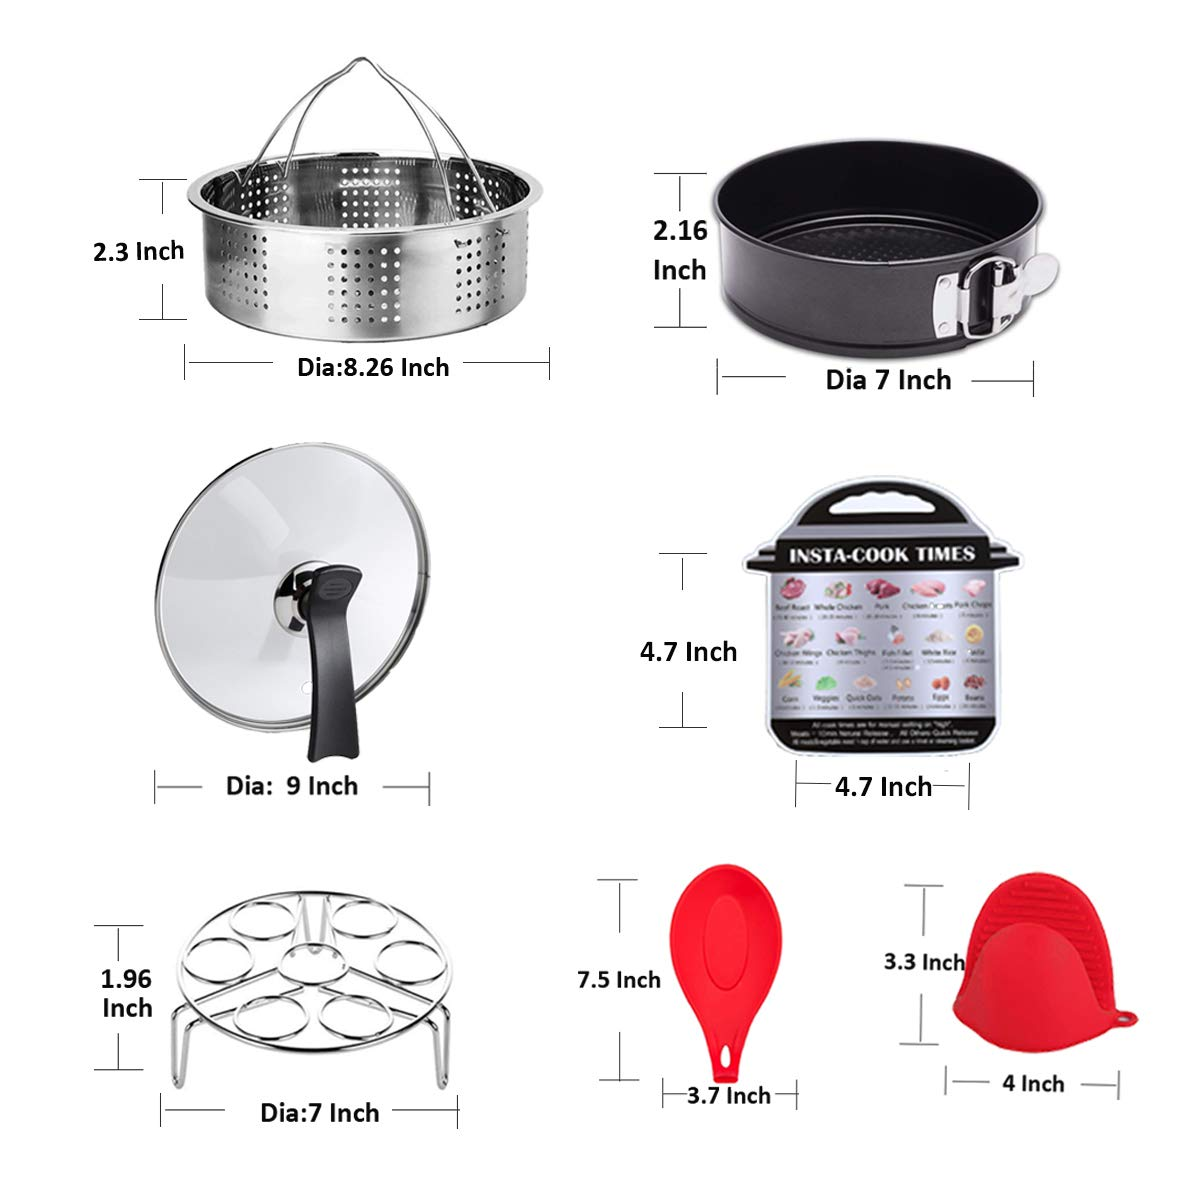 ULEE Accessories Compatible with Instant Pot 6 Qt - Including Steamer Basket, Glass Lid, Springform Pan, Egg Rack, Oven Mitts, Magnetic Cheat Sheet, Spoon Rest by ULEE (Image #6)